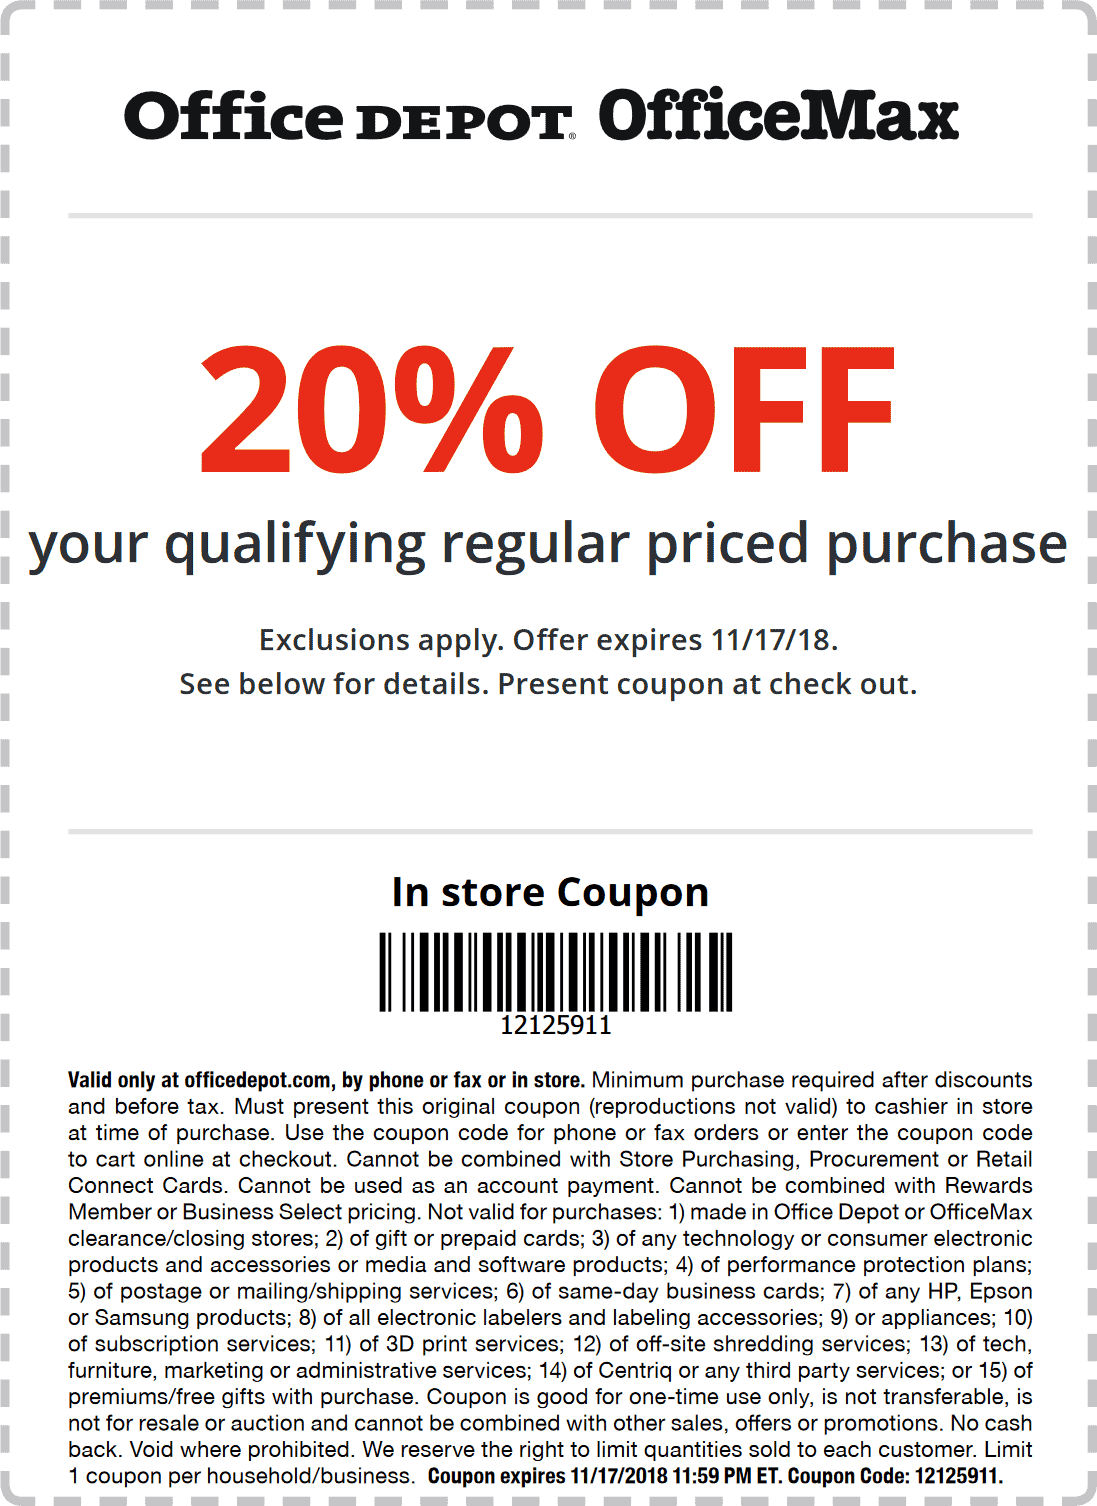 Office Depot Coupon October 2019 20% off at Office Depot & OfficeMax, or online via promo code 12125911